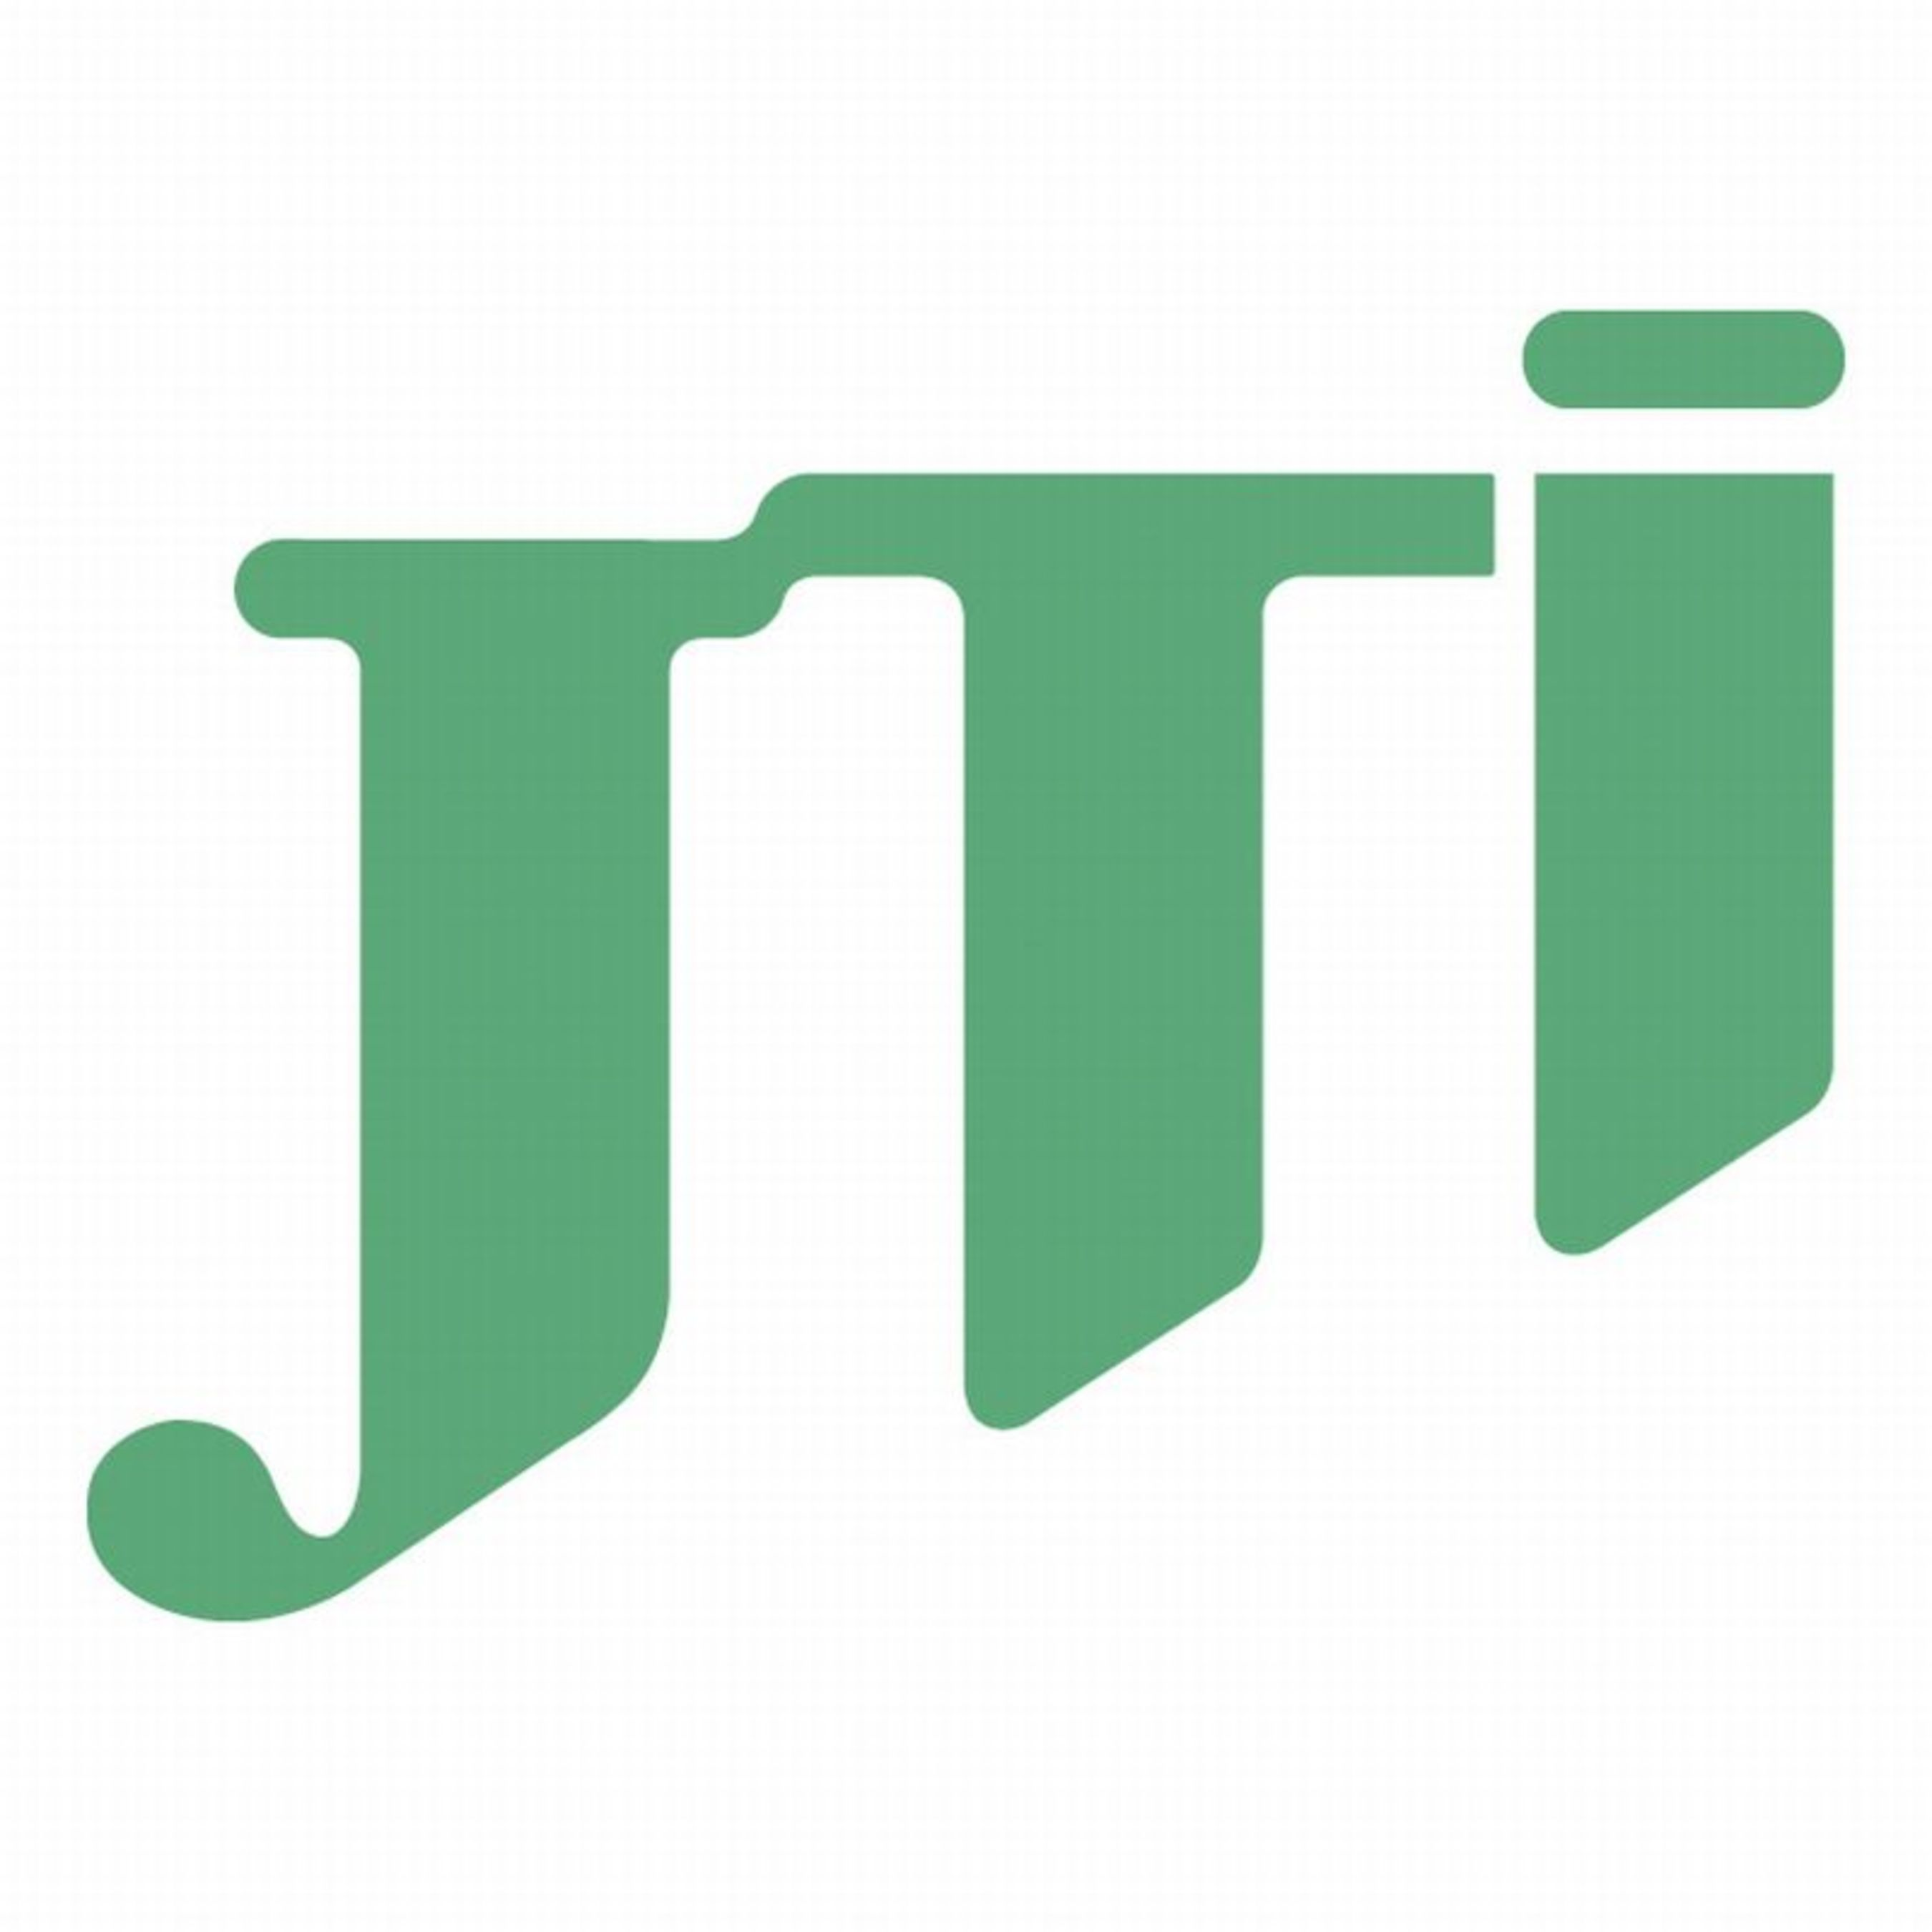 JT Acquires Logic, the Leading Independent US e-Cigarette Company